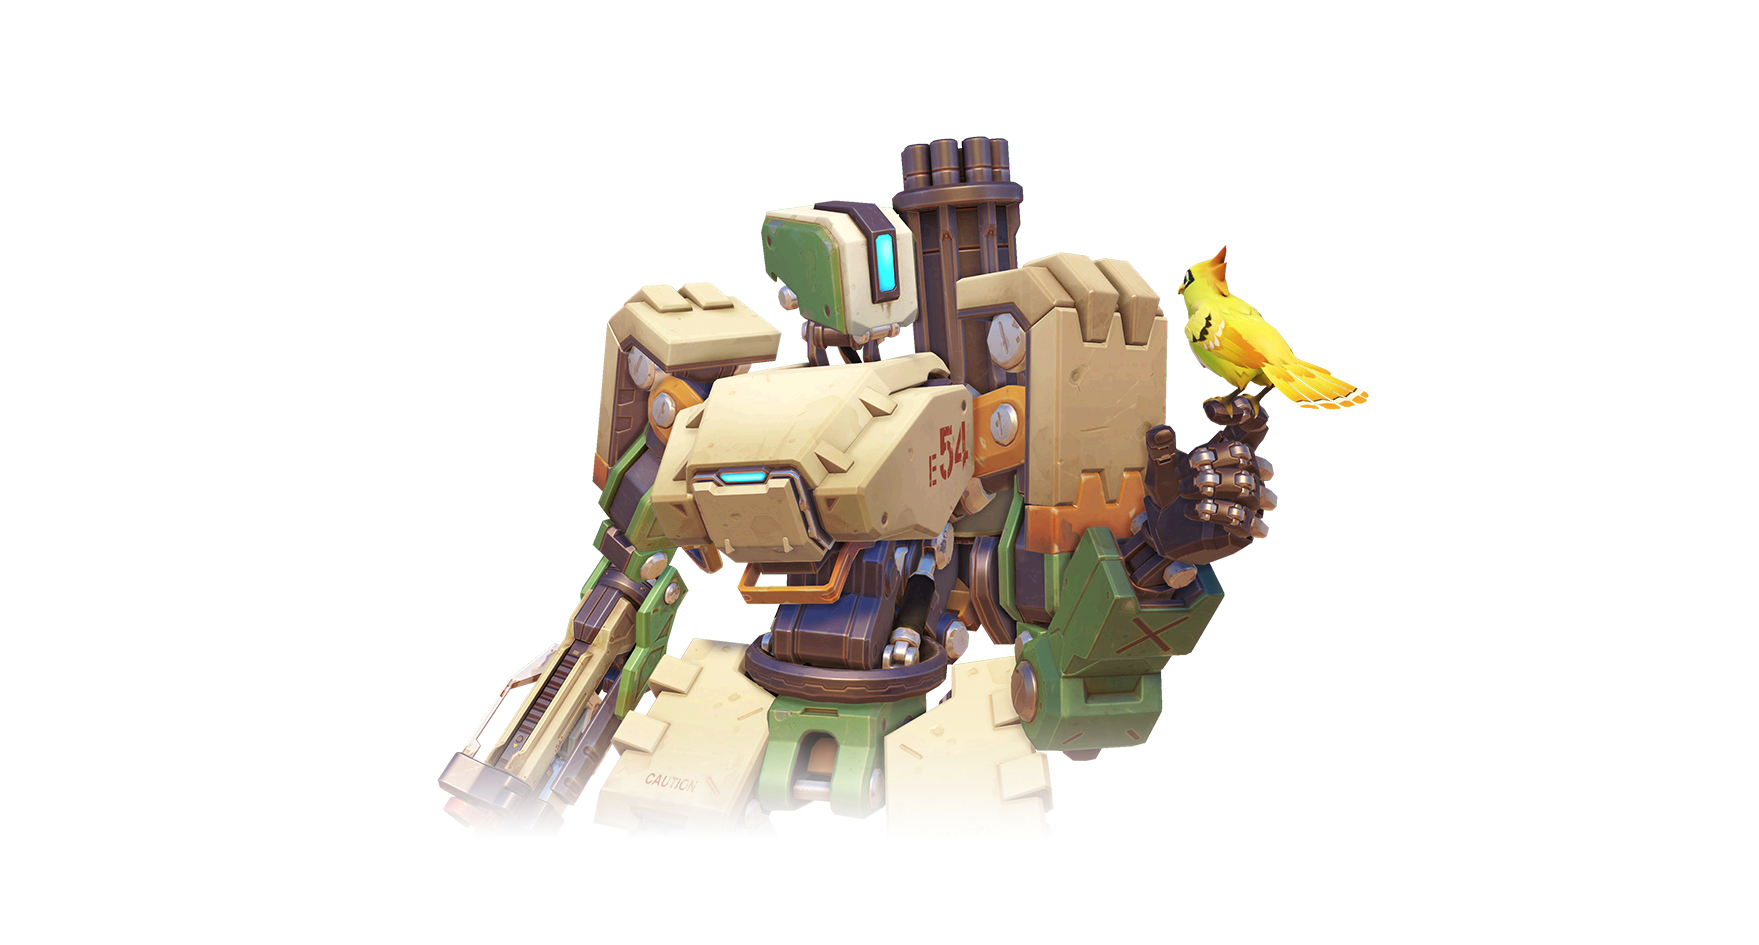 Image wiki fandom powered. Overwatch bastion png